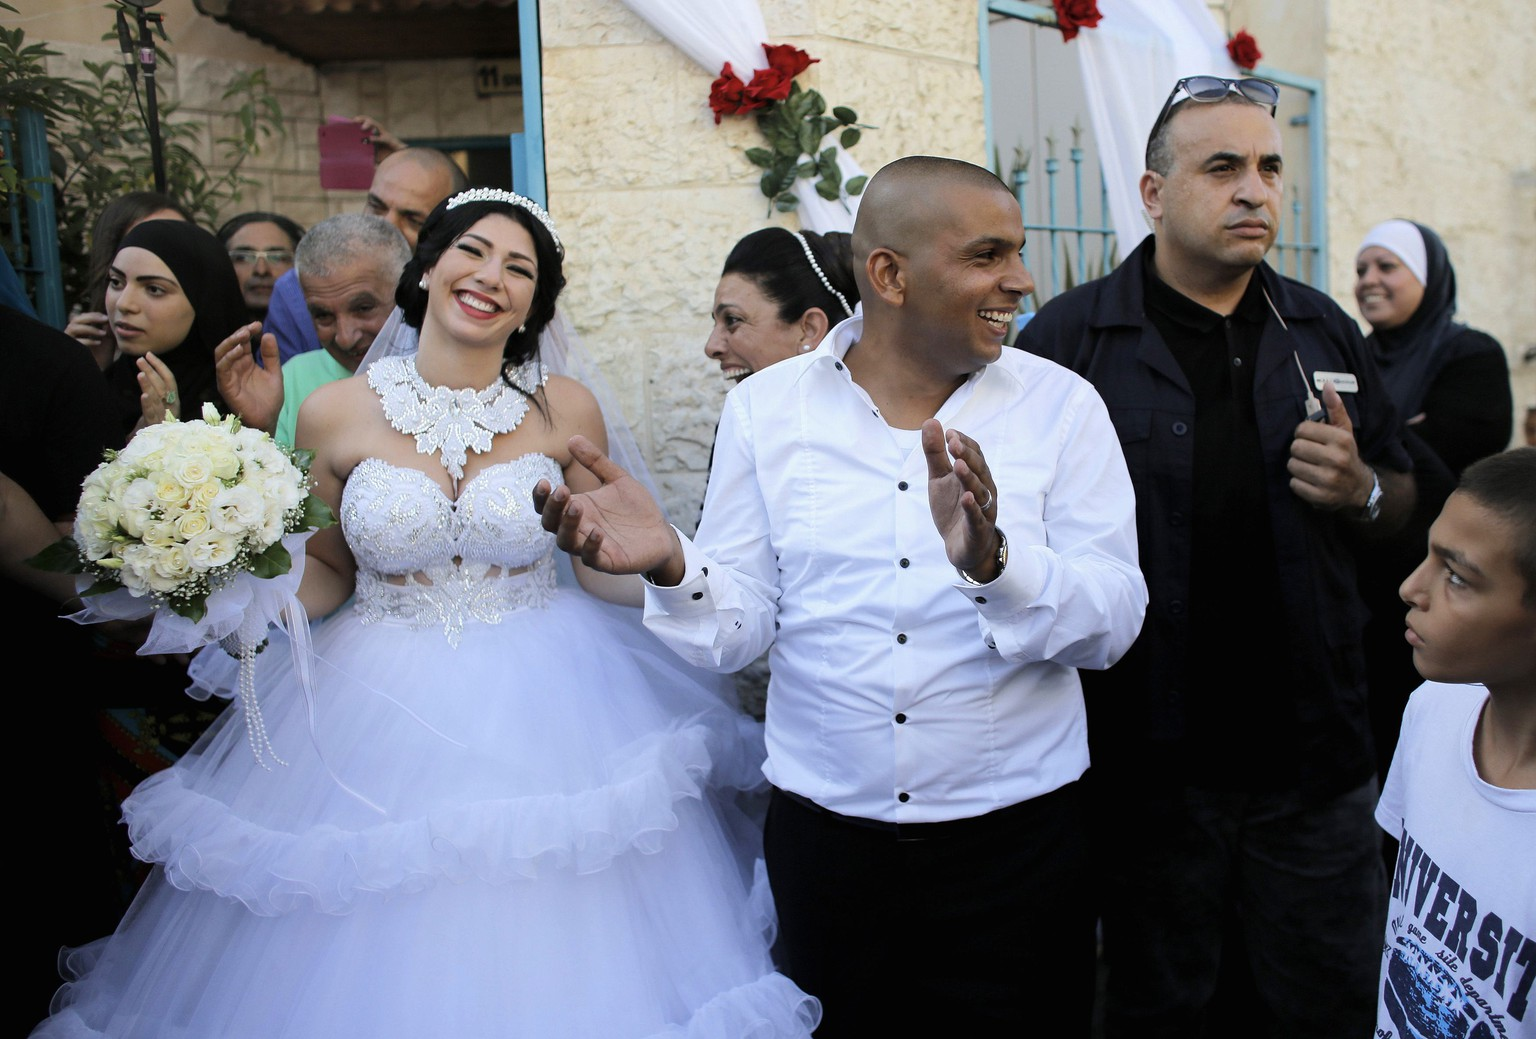 Groom Mahmoud Mansour, 26, (C) and his bride Maral Malka, 23, celebrate with friends and family before their wedding in Mahmoud's family house in Jaffa, south of Tel Aviv August 17, 2014. Israeli police on Sunday blocked more than 200 far-right Israeli protesters from rushing guests at the wedding of a Jewish woman and Muslim man as they shouted